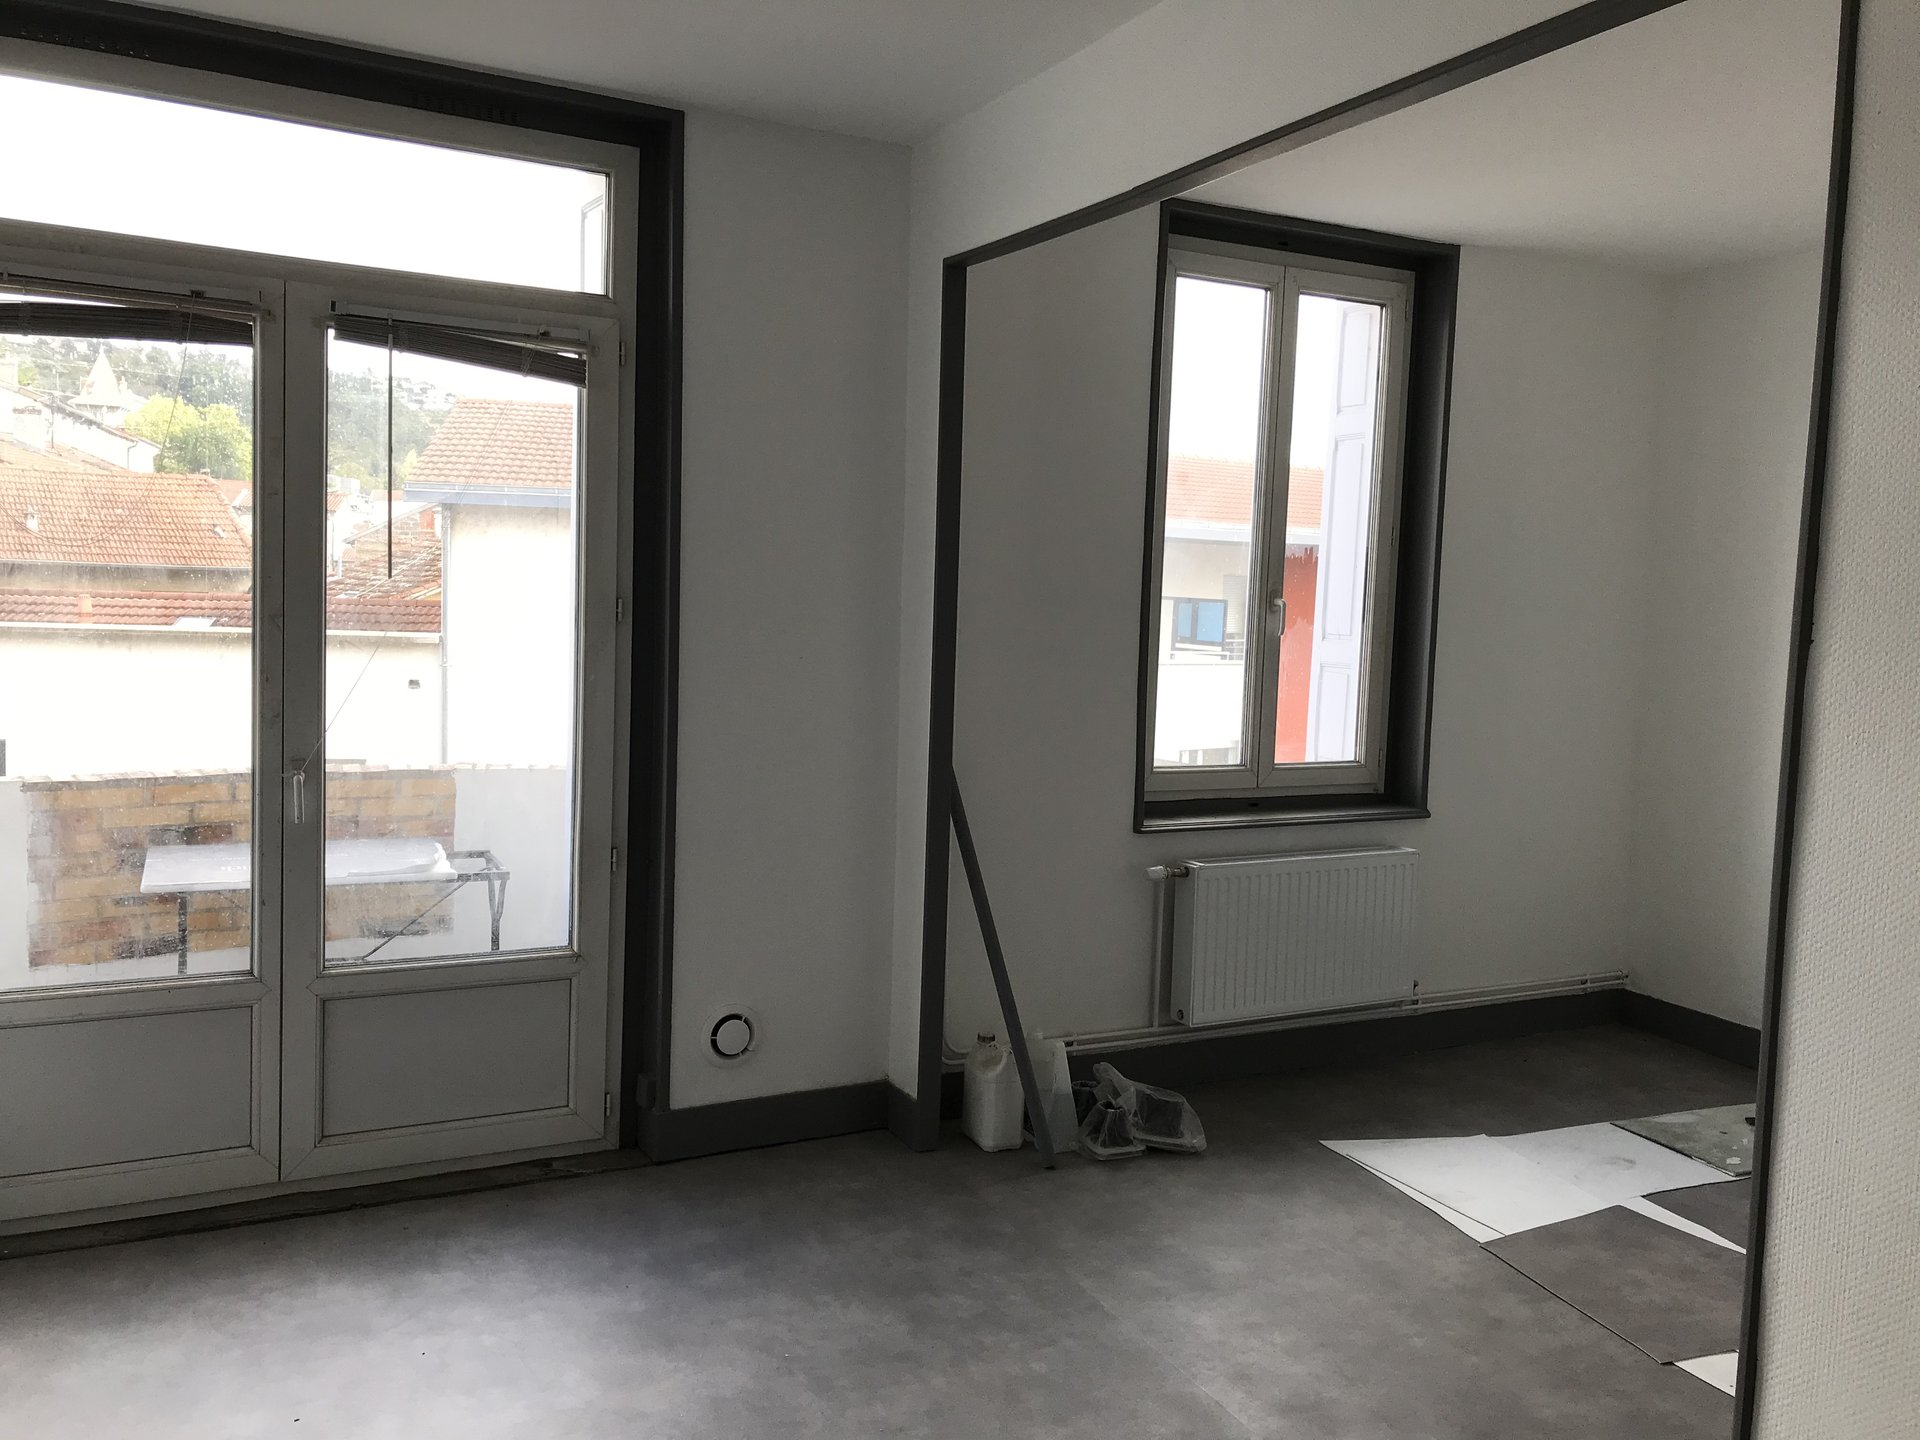 SAINT-JUST-SAINT-RAMBERT- Appartement T2 refait à neuf